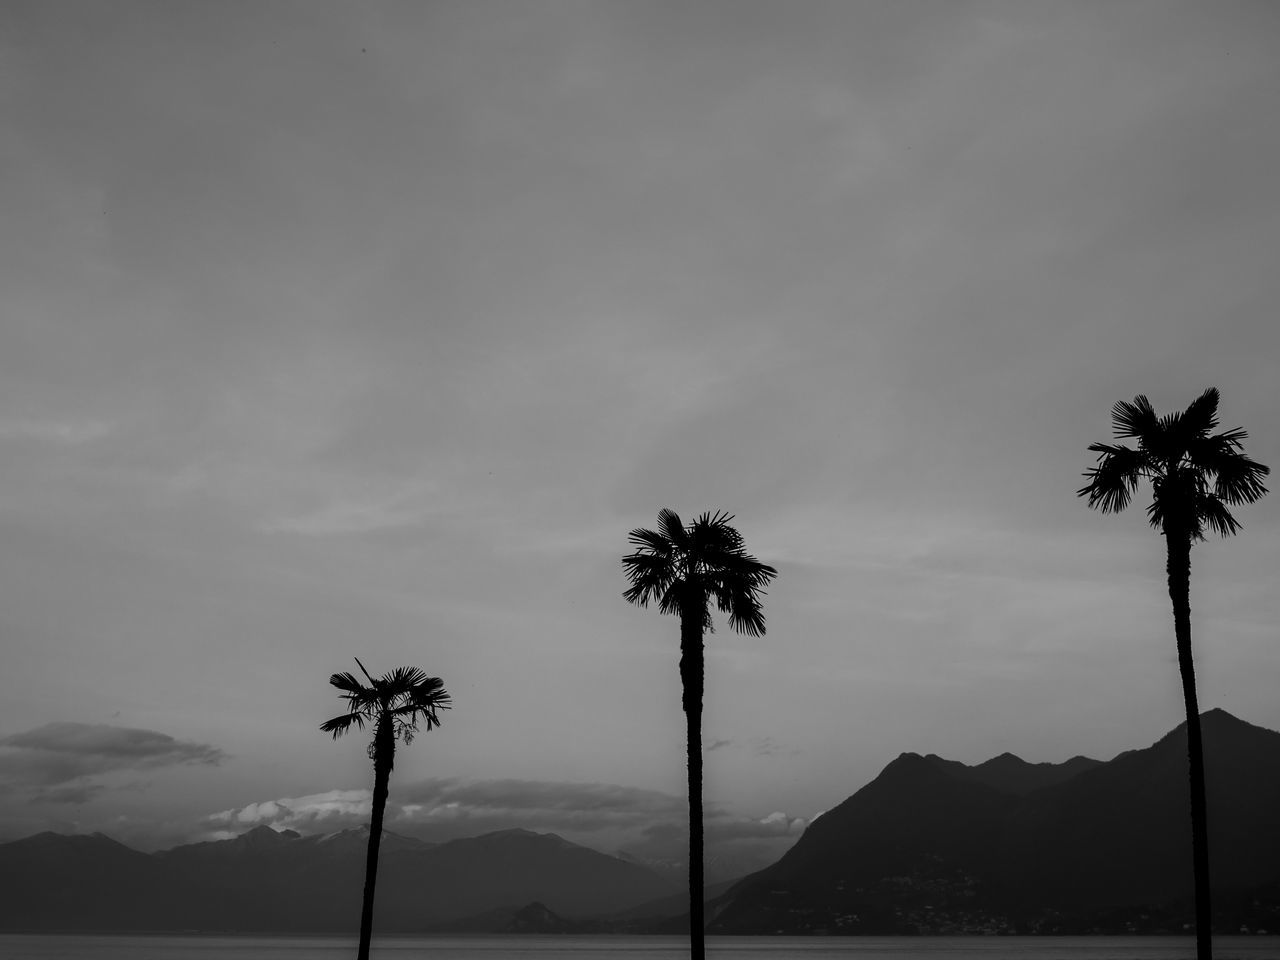 Lake view. Beauty In Nature Black & White Black And White Black And White Photography Blackandwhite Blackandwhite Photography Cloud - Sky Day Growth Lake Lake View Low Angle View Mountain Mountains Nature No People Outdoors Palm Tree Scenics Sky Tranquility Tree Tree Trunk